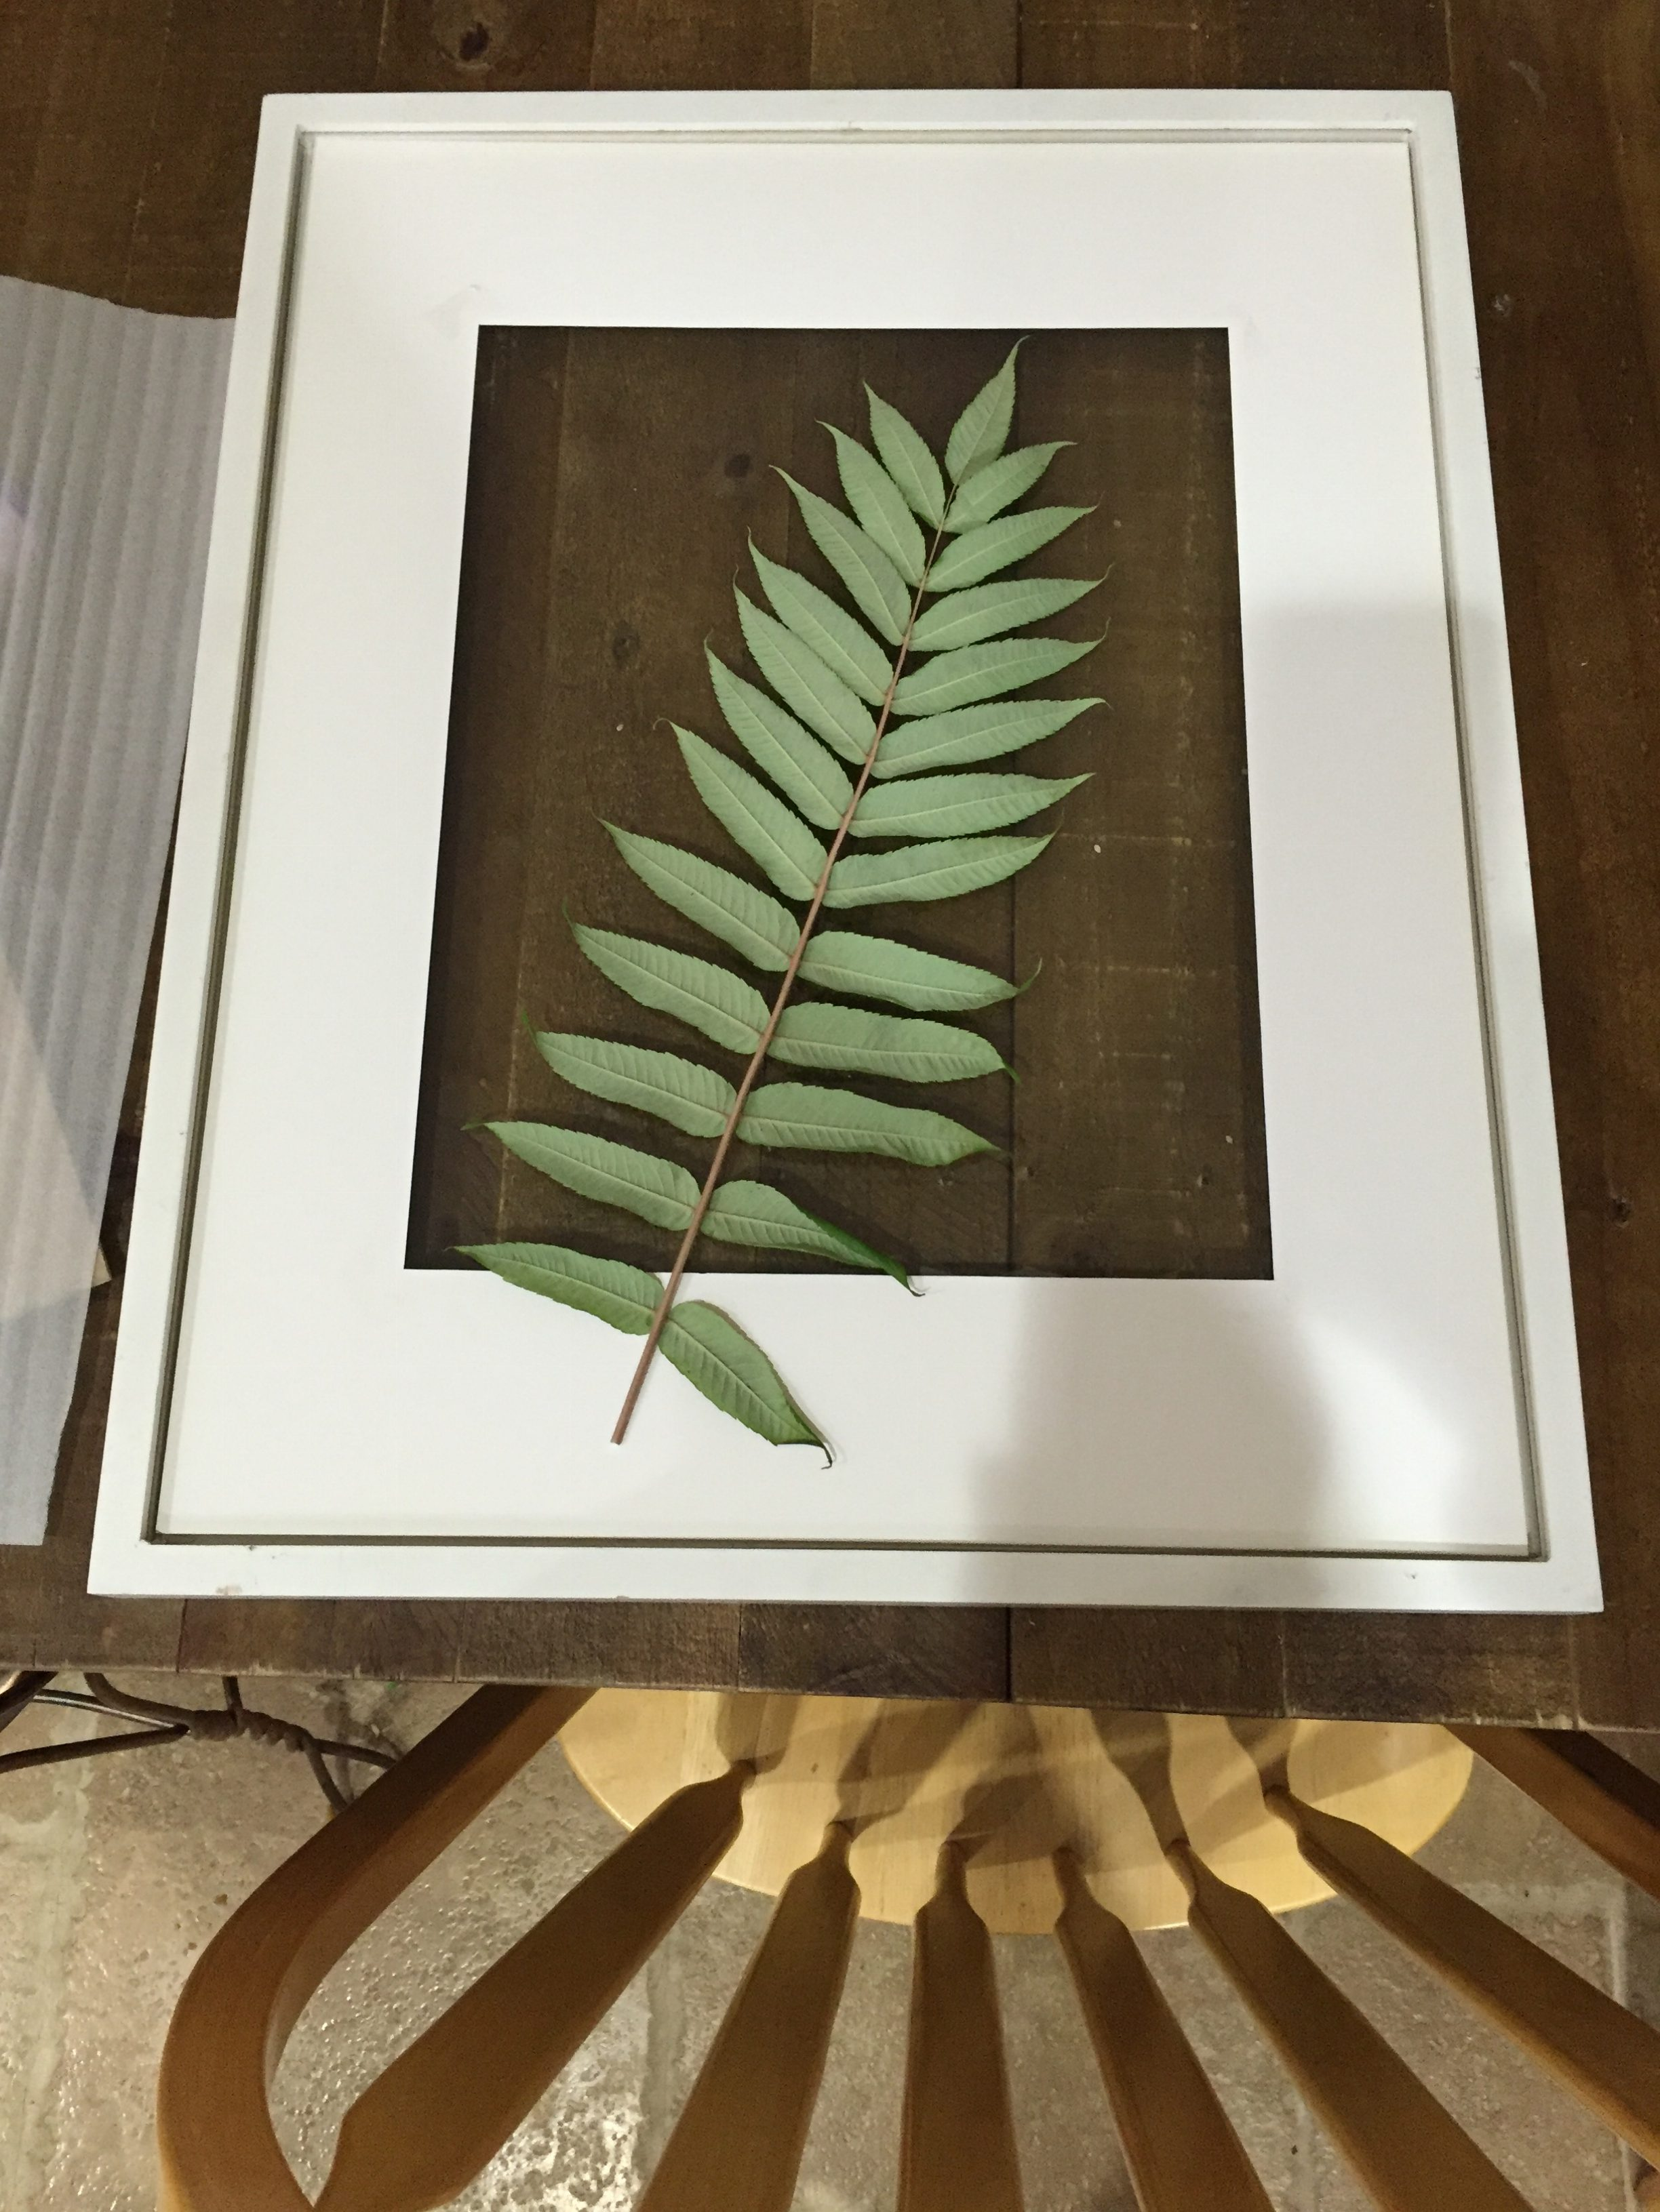 Framed botanicals are absolutely dreamy! This tutorial will show you how to make your own framed greenery for FREE, in less than 10 minutes!